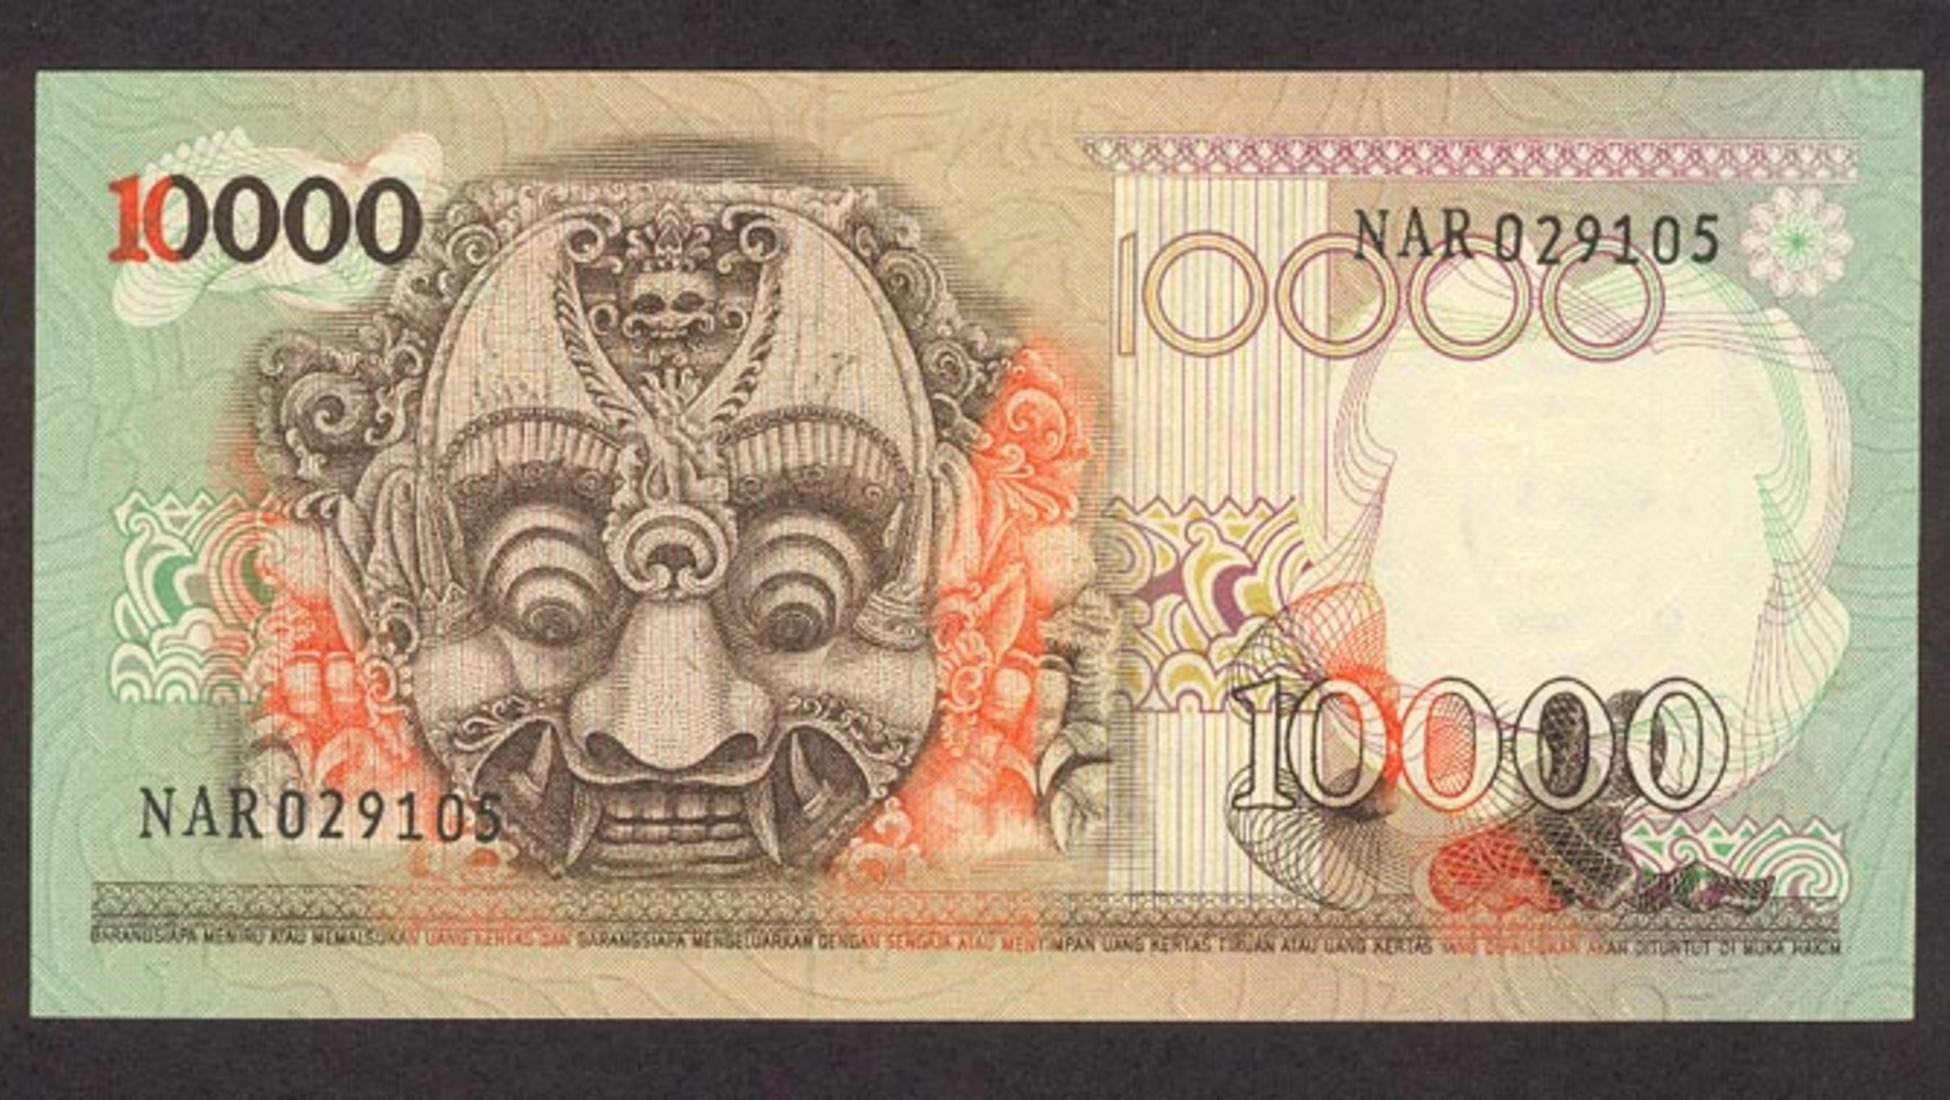 5 banknotes you should invest in right now - Catawiki